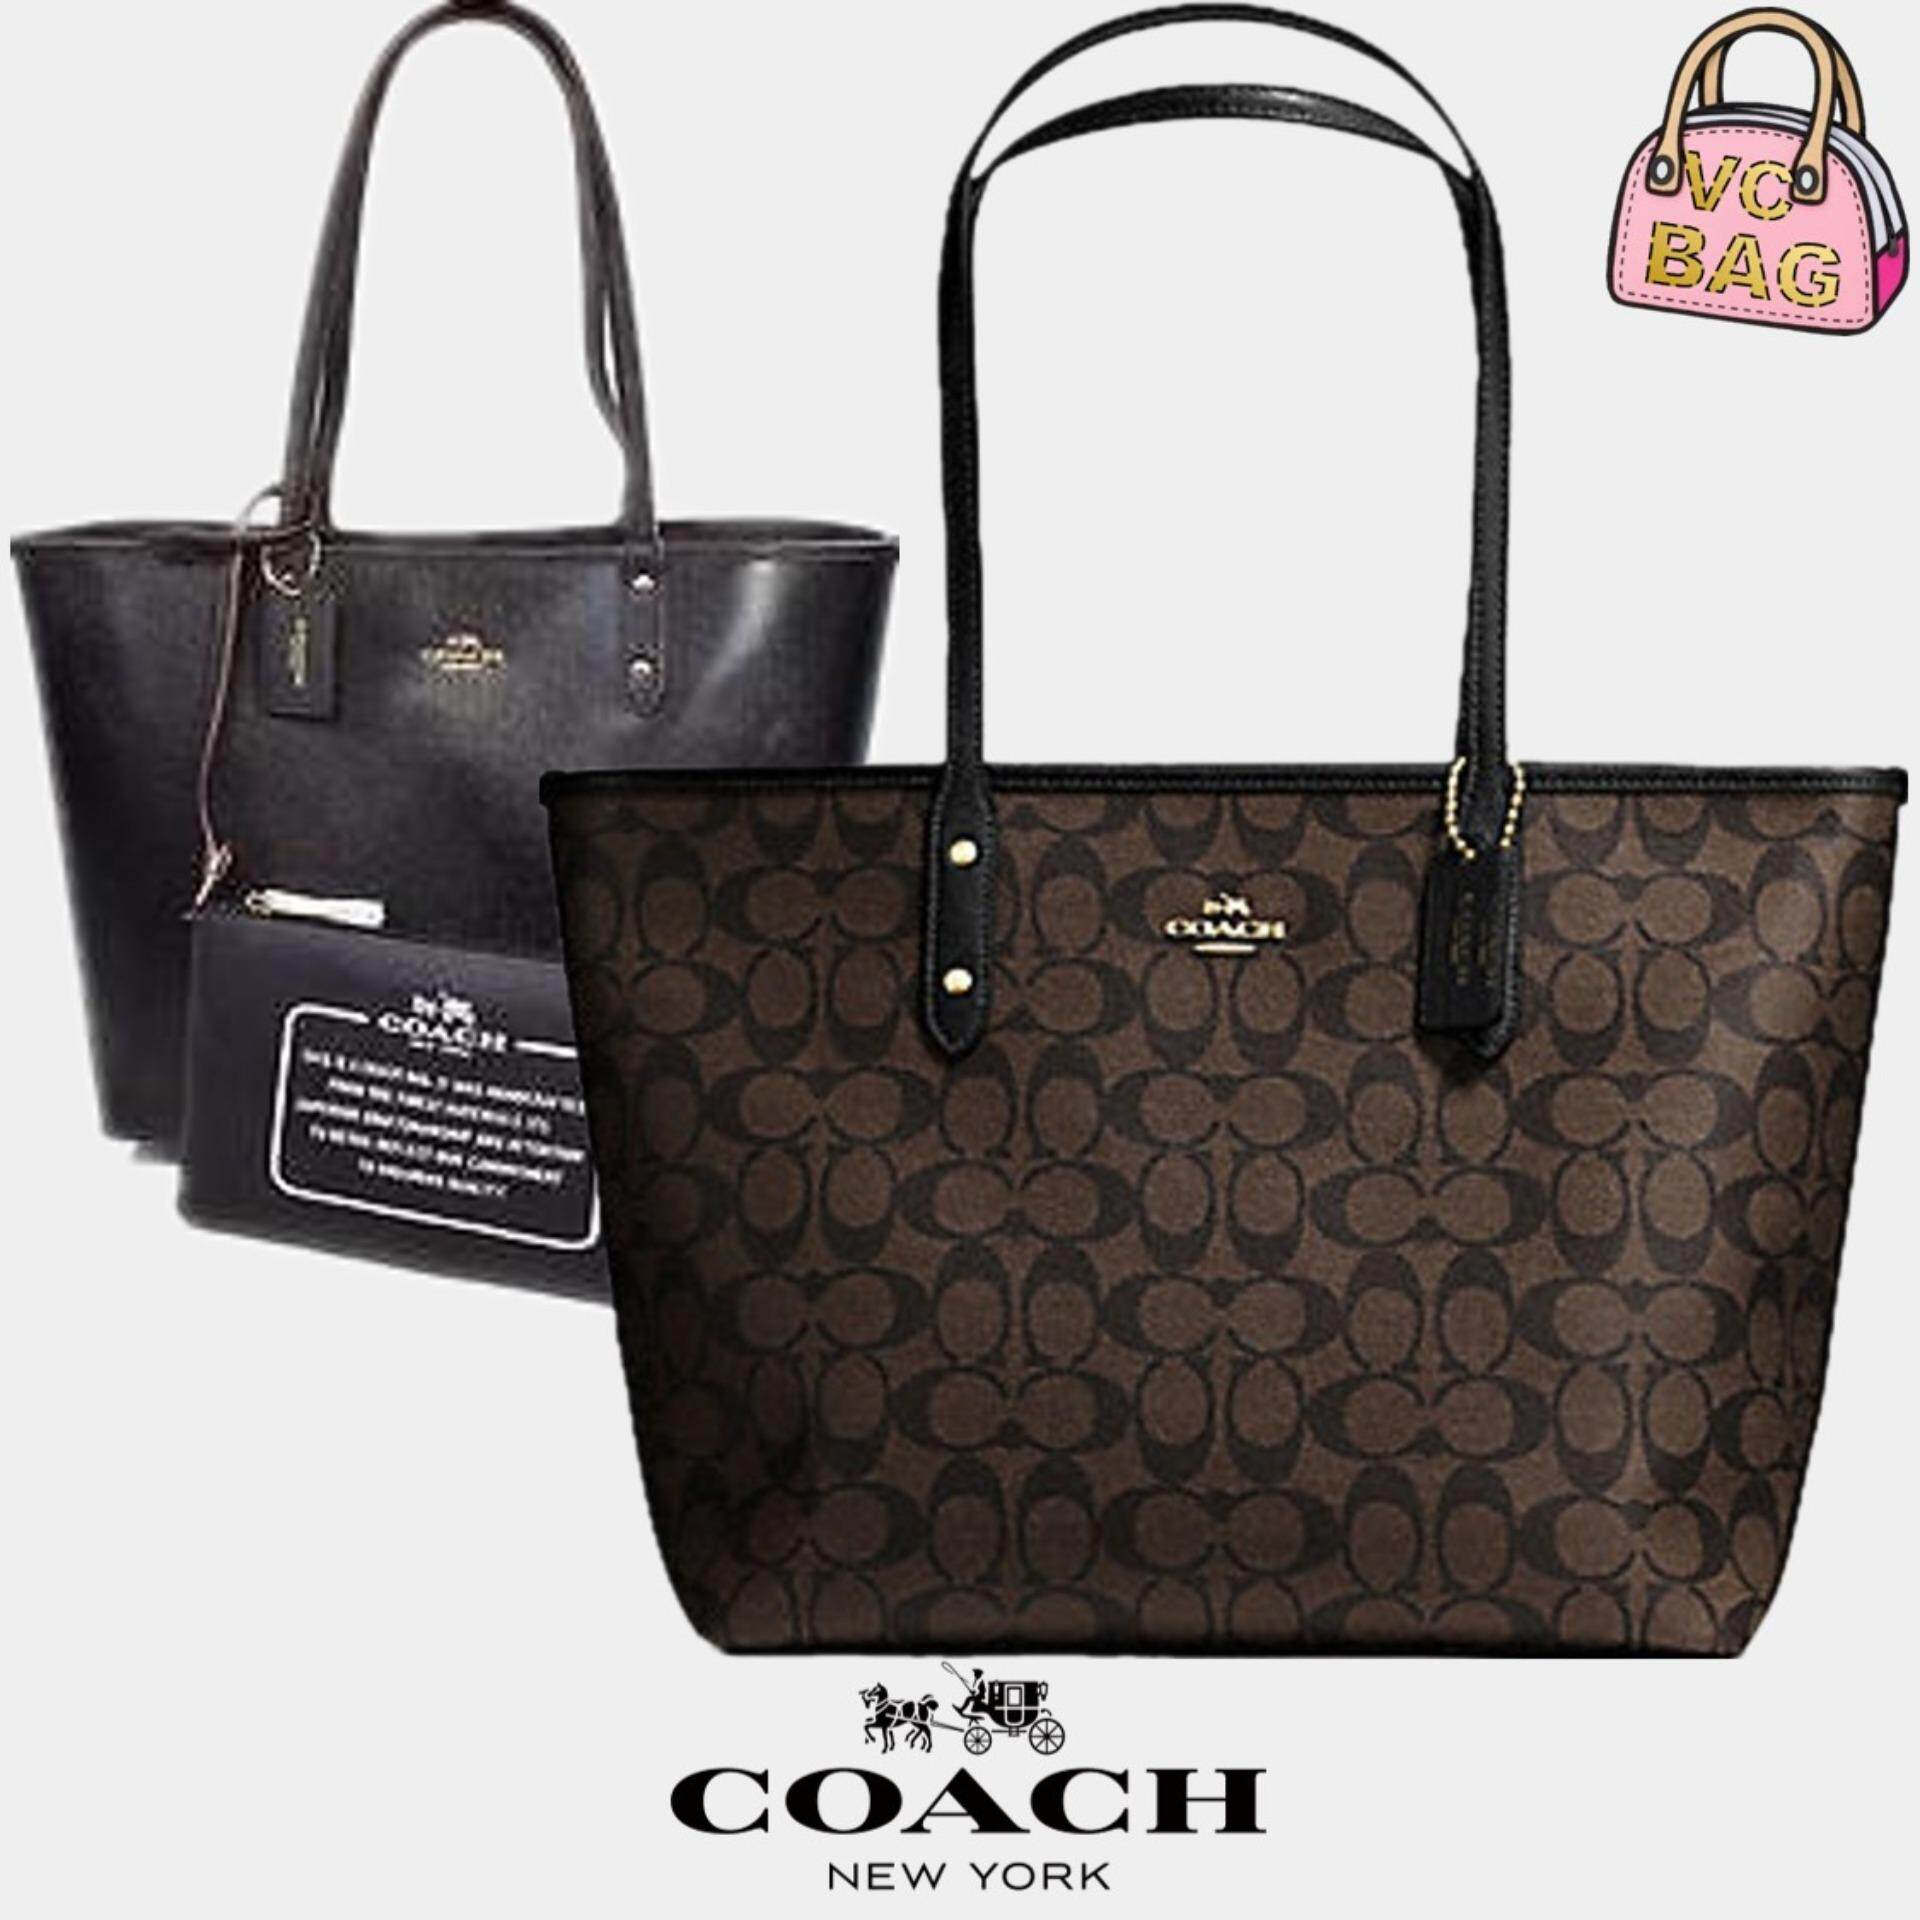 28dadd8e COACH F36658 Reversible City Tote in Signature Bag [Gold/Brown/Black]